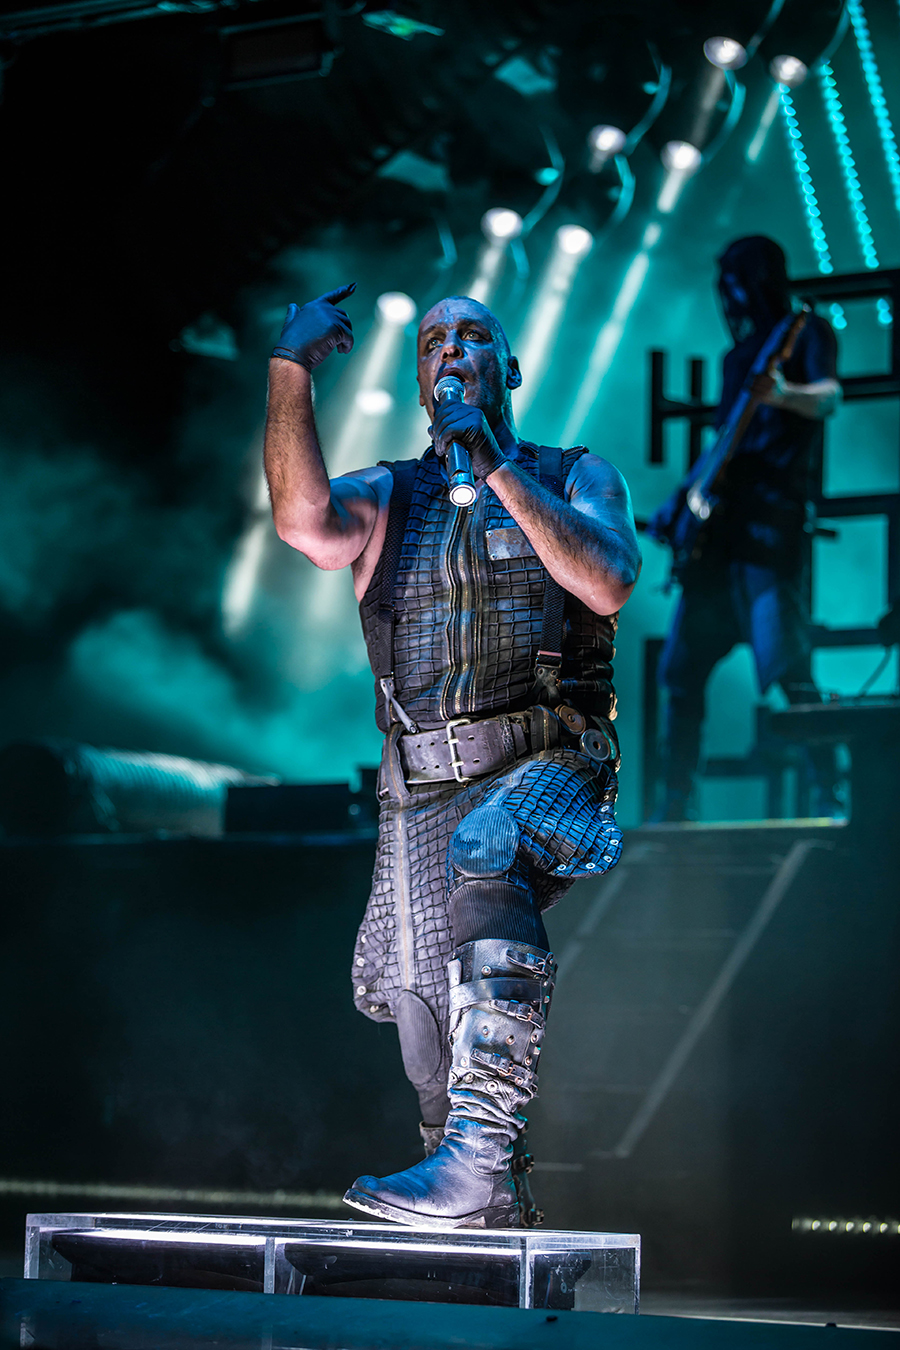 4I0A0519 Rammstein breaths fire into the crowd at Hollywood Casino Amphitheater